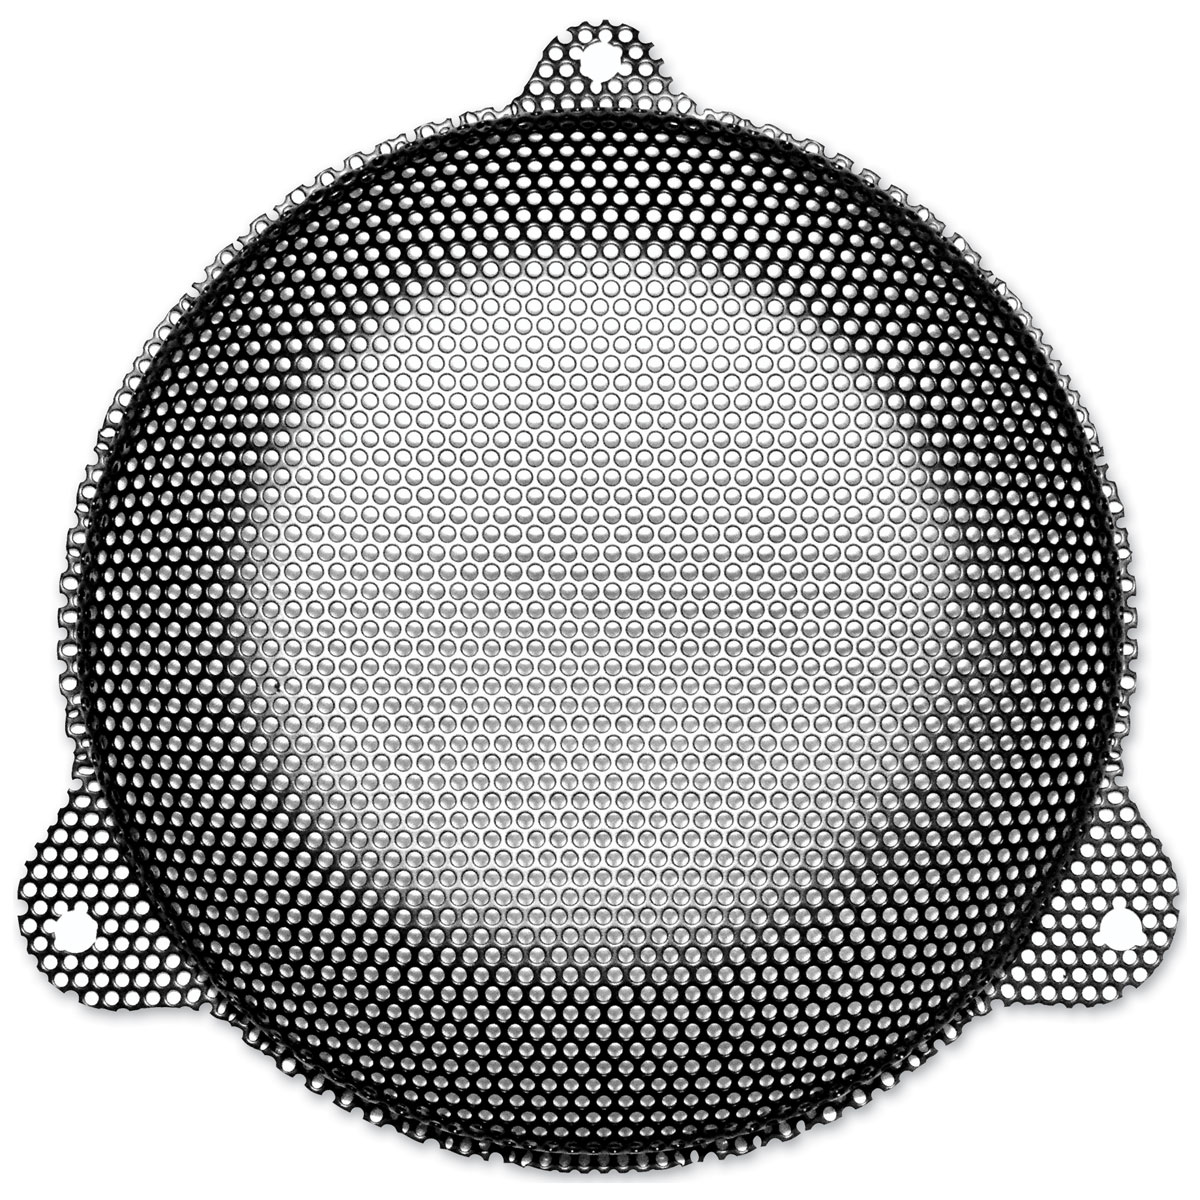 Hawg Wired Rushmore Punched Steel Mesh Speaker Grills